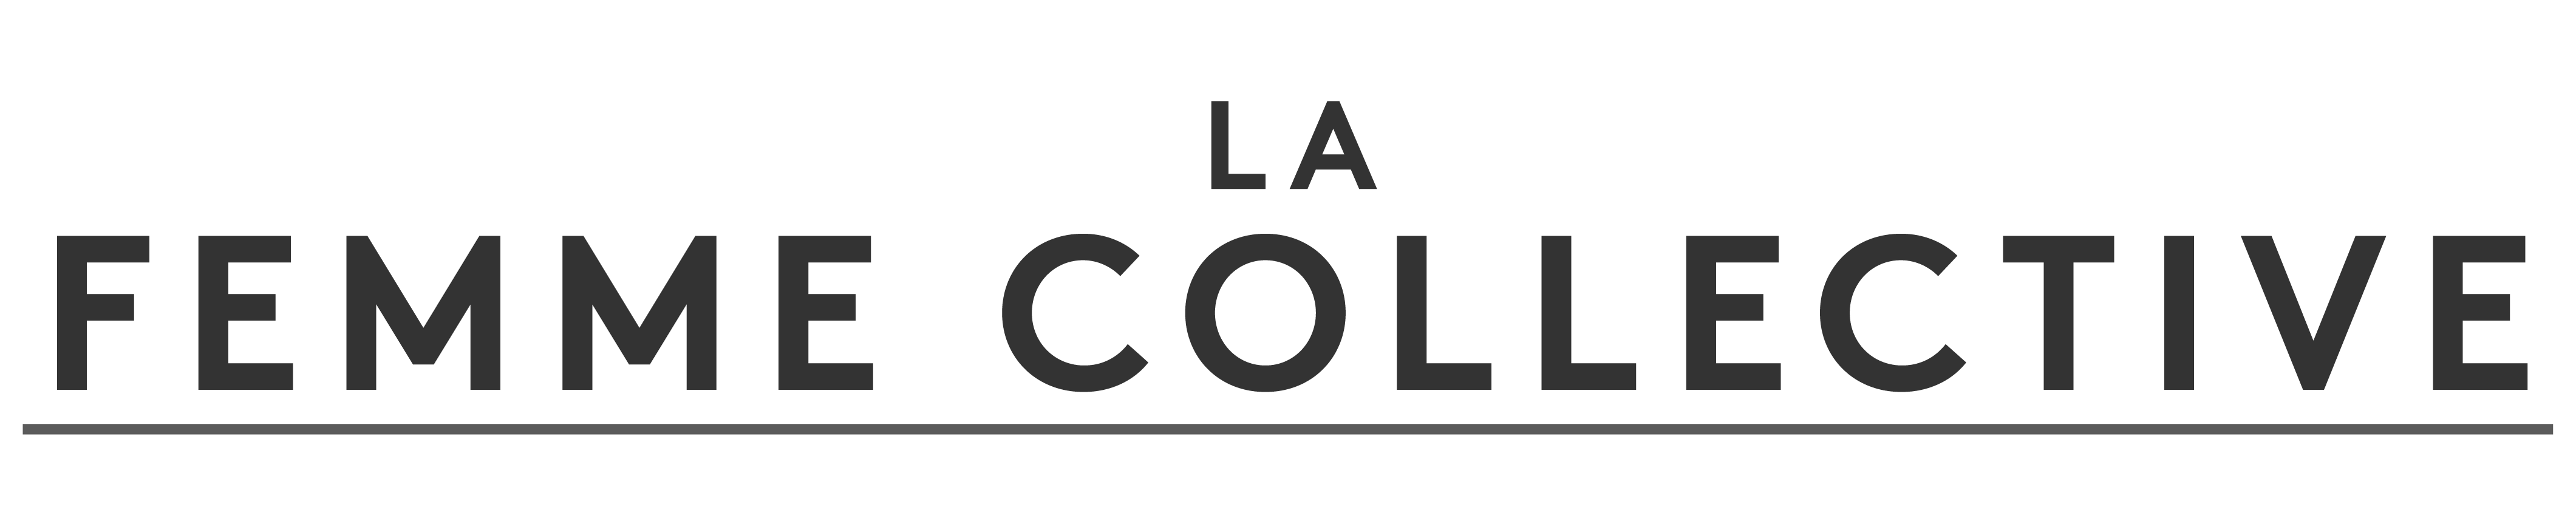 words in plain text, sans-serif, La Femme Collective